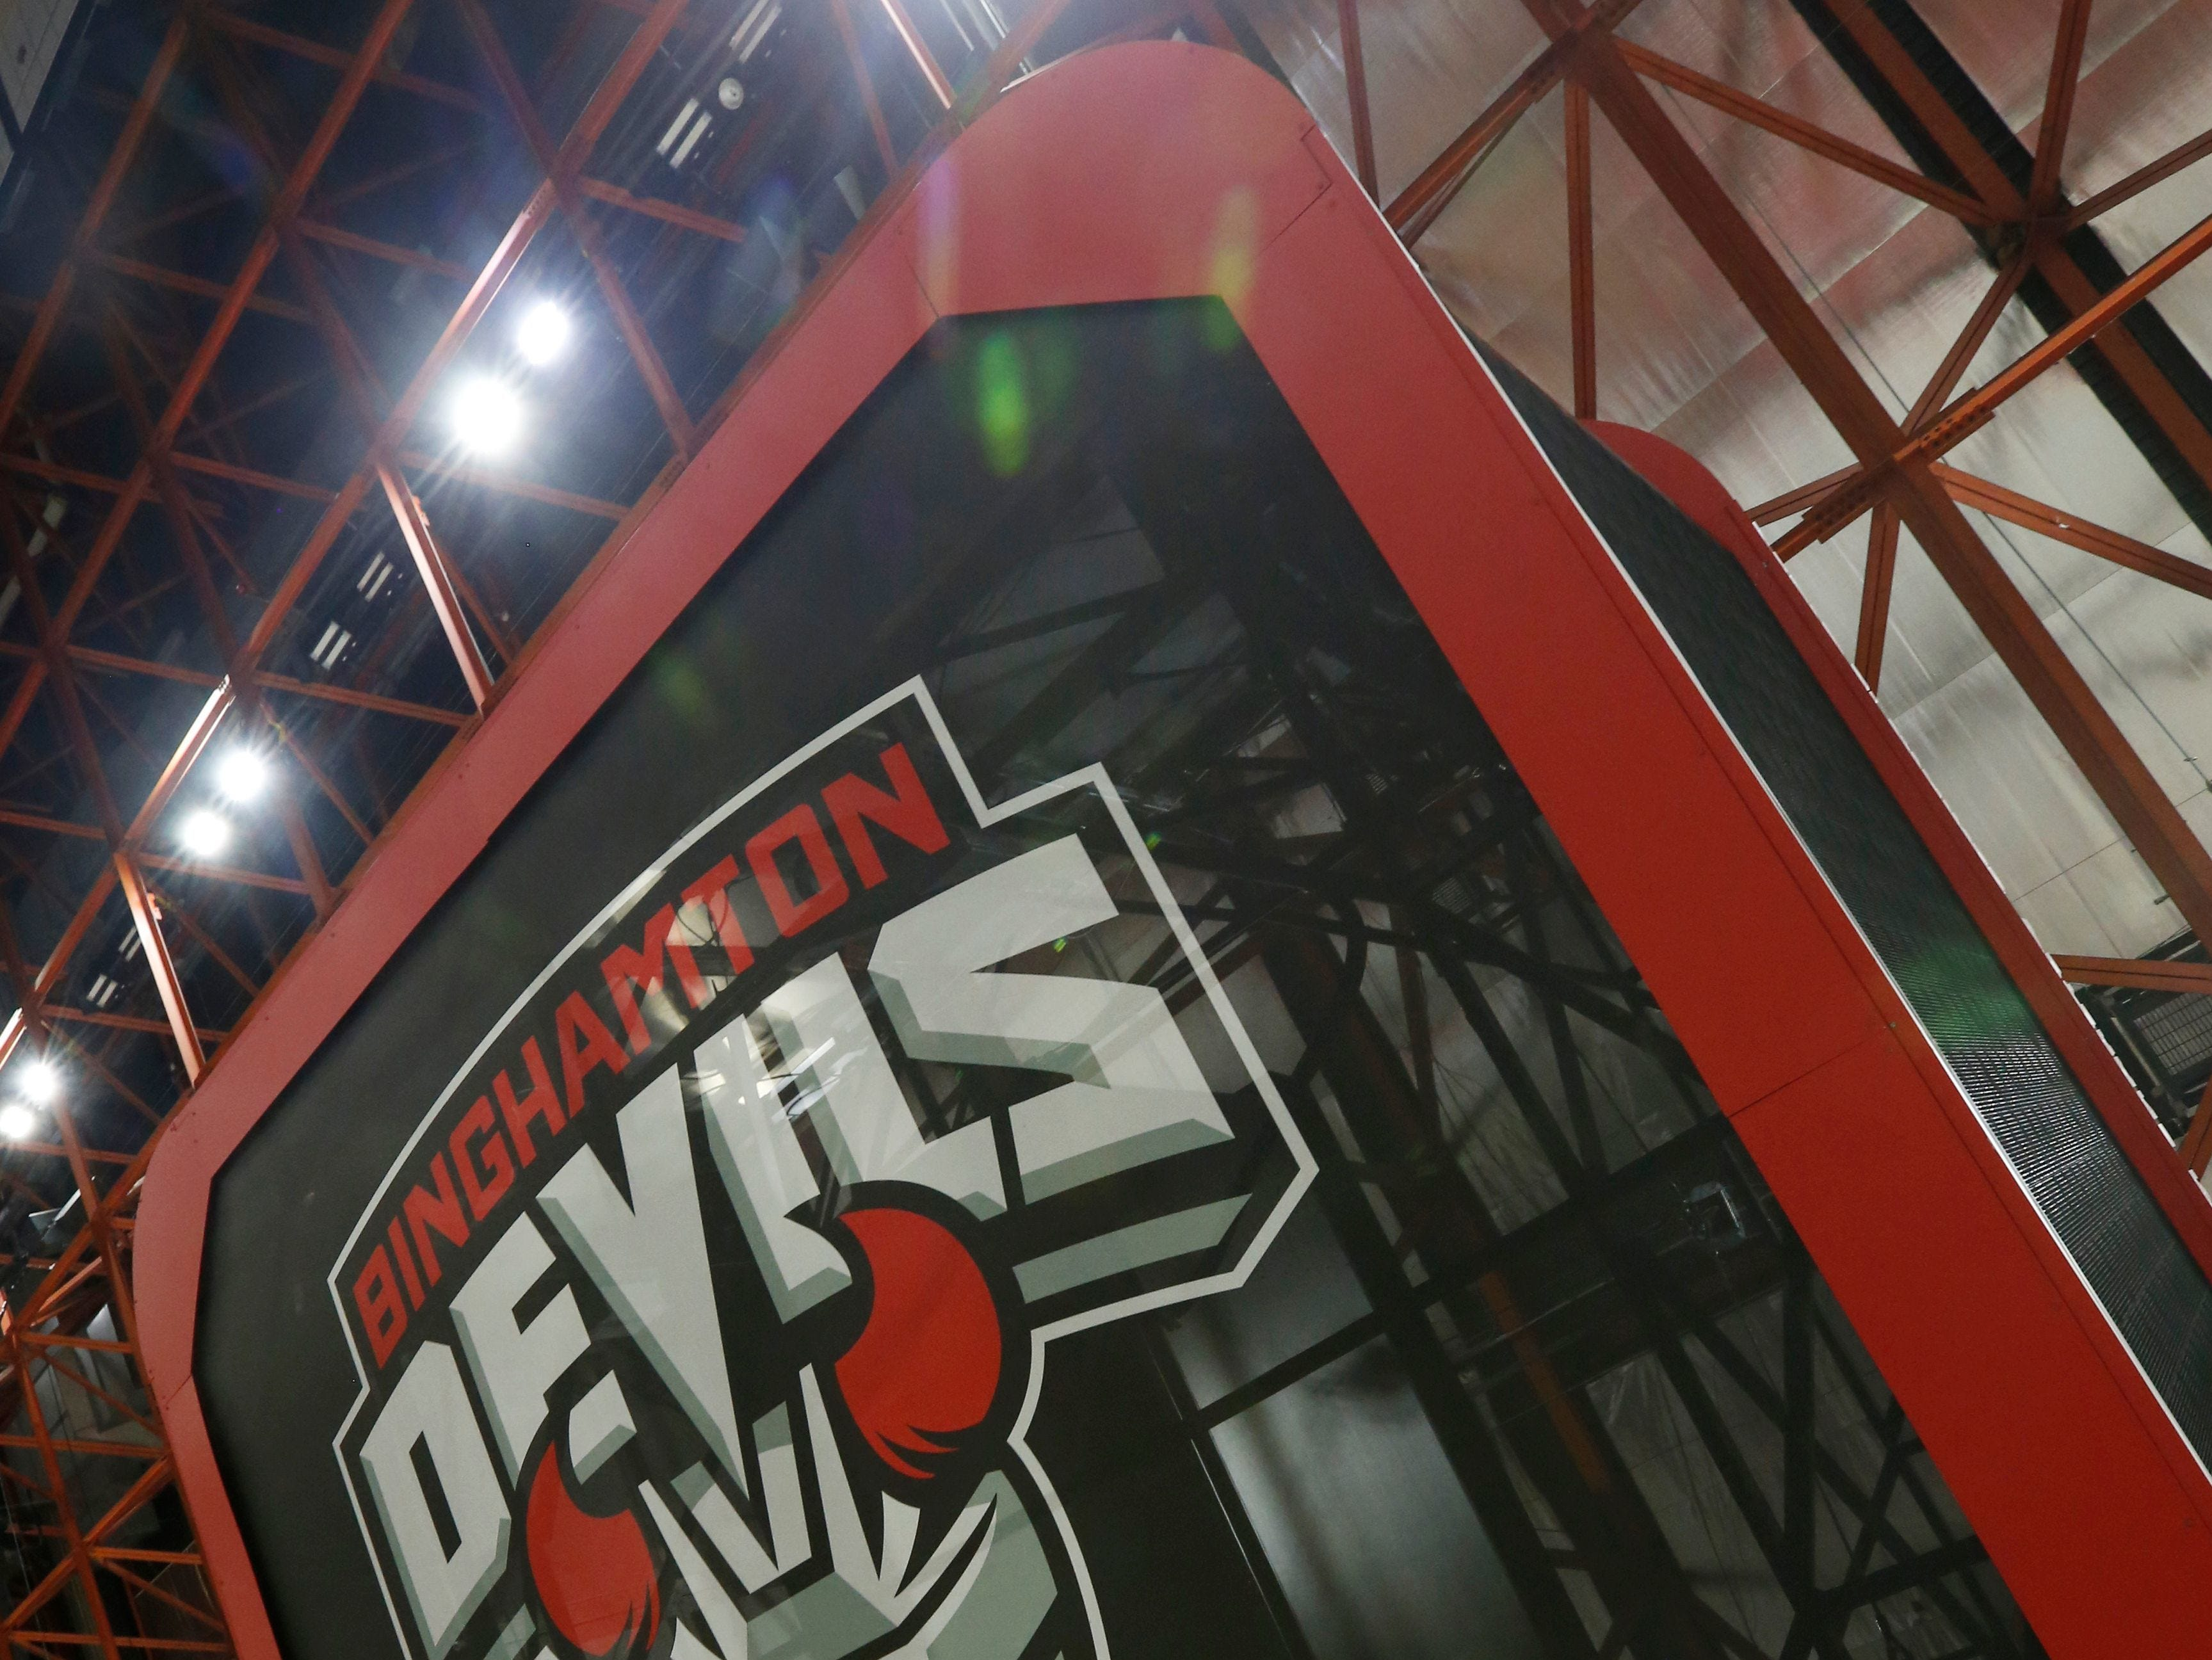 2017: The bottom of the scoreboard inside the Floyd L. Maines Veterans Memorial Arena in Binghamton on Tuesday, September 5, 2017. The Binghamton Devils logo was added as part of the arena's redecorating prior to the start of hockey season.